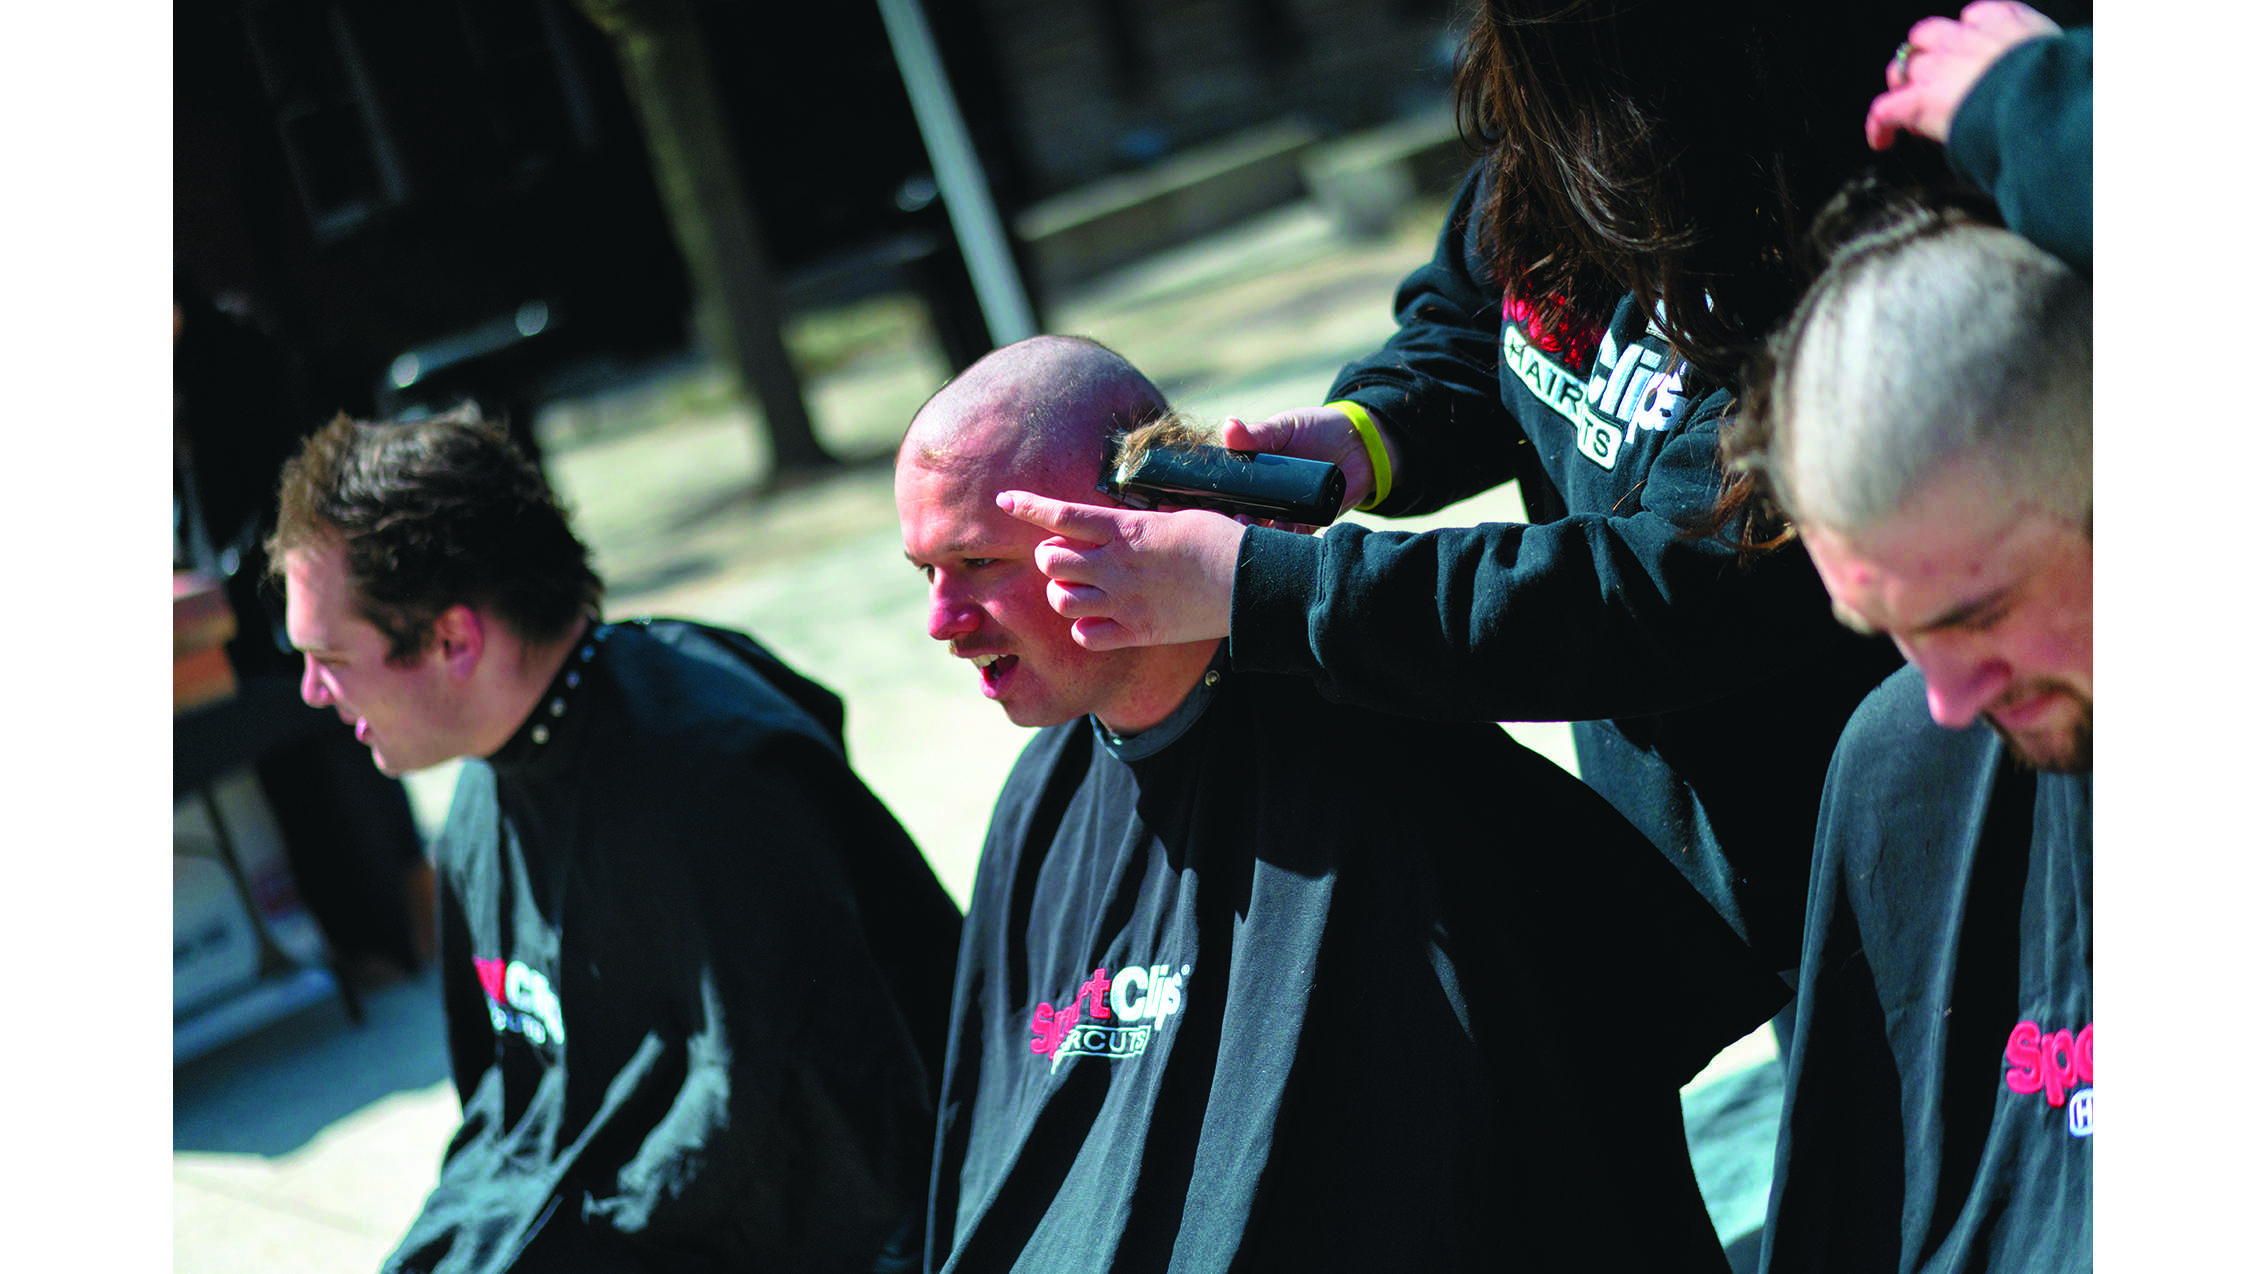 UI students have their heads shaved on the T. Anne Cleary Walkway on Wednesday, April 4, 2018. Be the Match has asked students, faculty, and alumni to shave their heads in support of cancer patients. (Lucas Xu/The Daily Iowan)